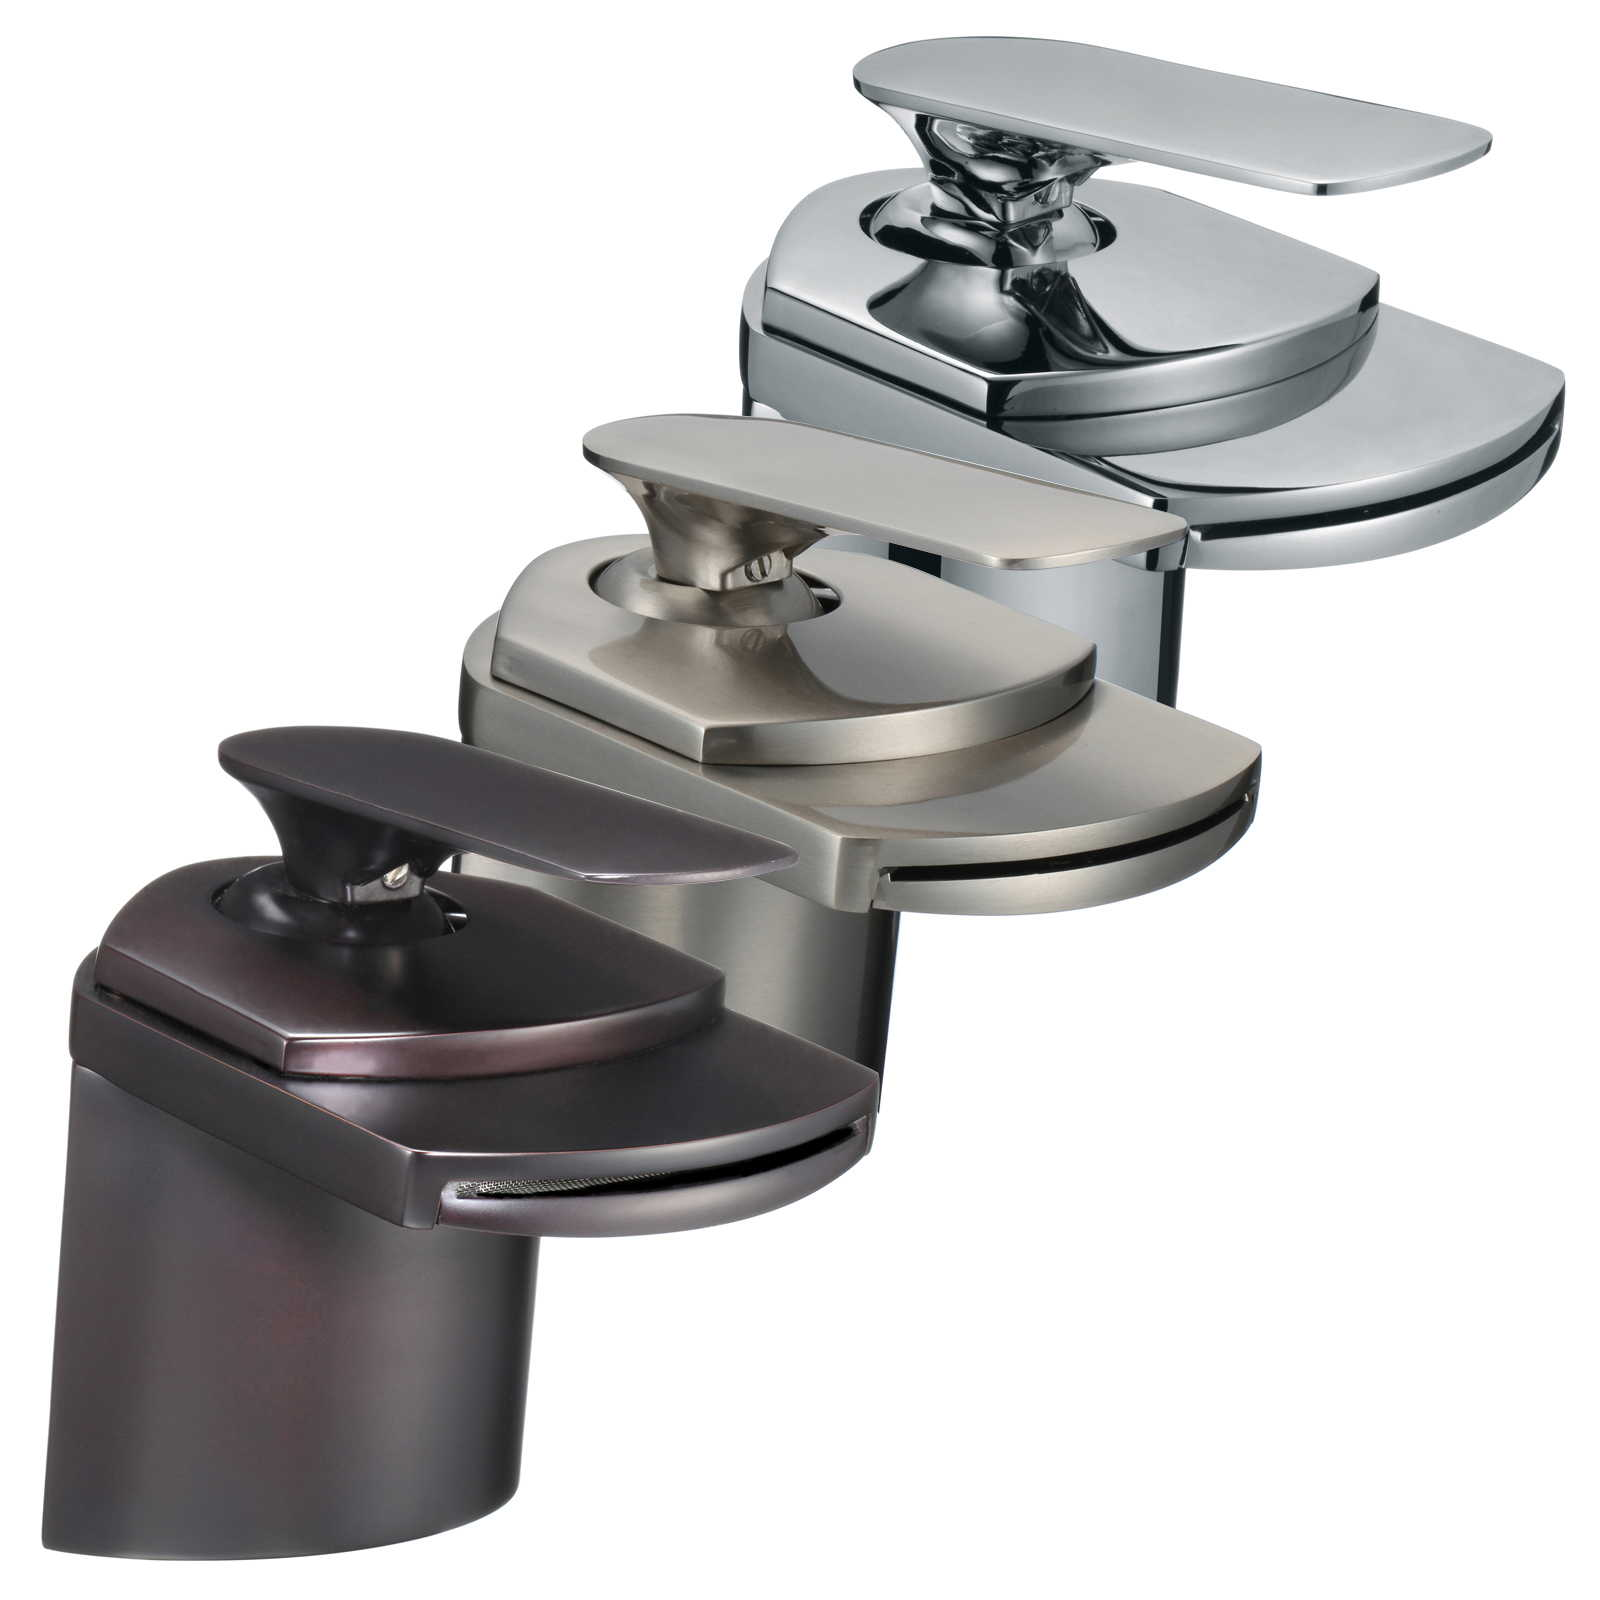 FREUER Cascate Collection: Modern Bathroom Sink Faucet - Multiple Finishes Available